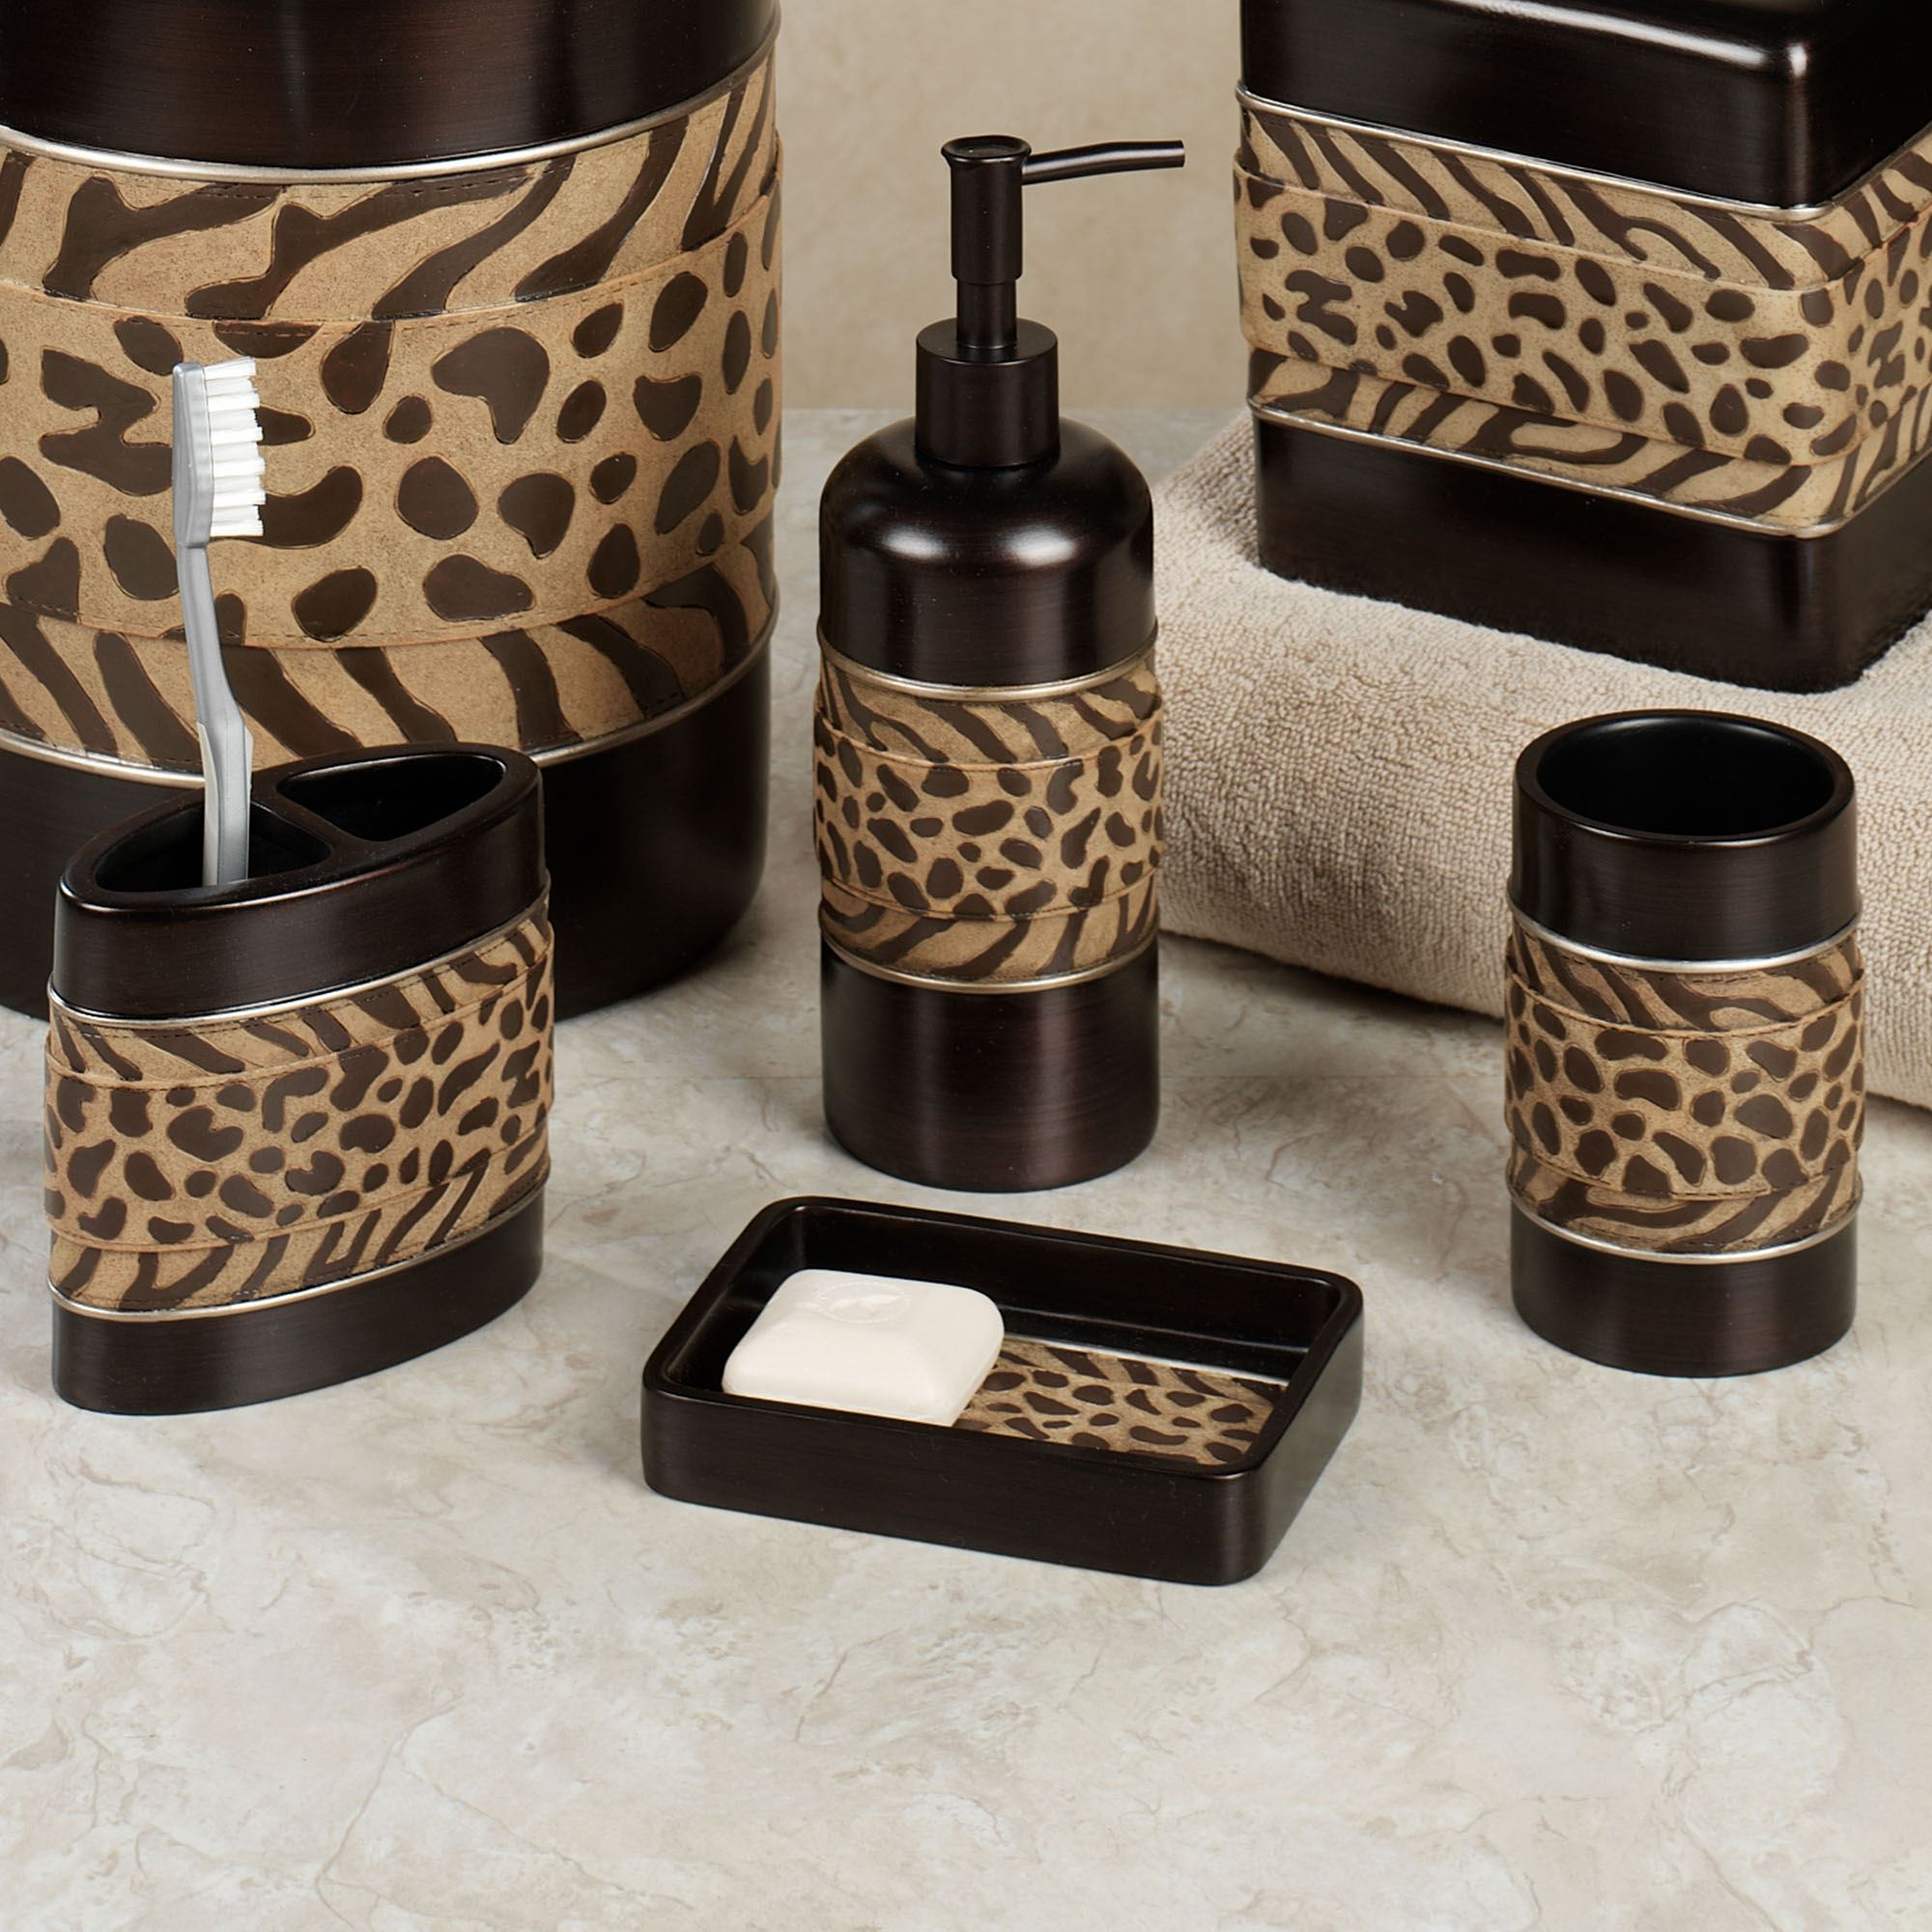 Cheshire animal print bath accessories for Animal themed bathroom decor